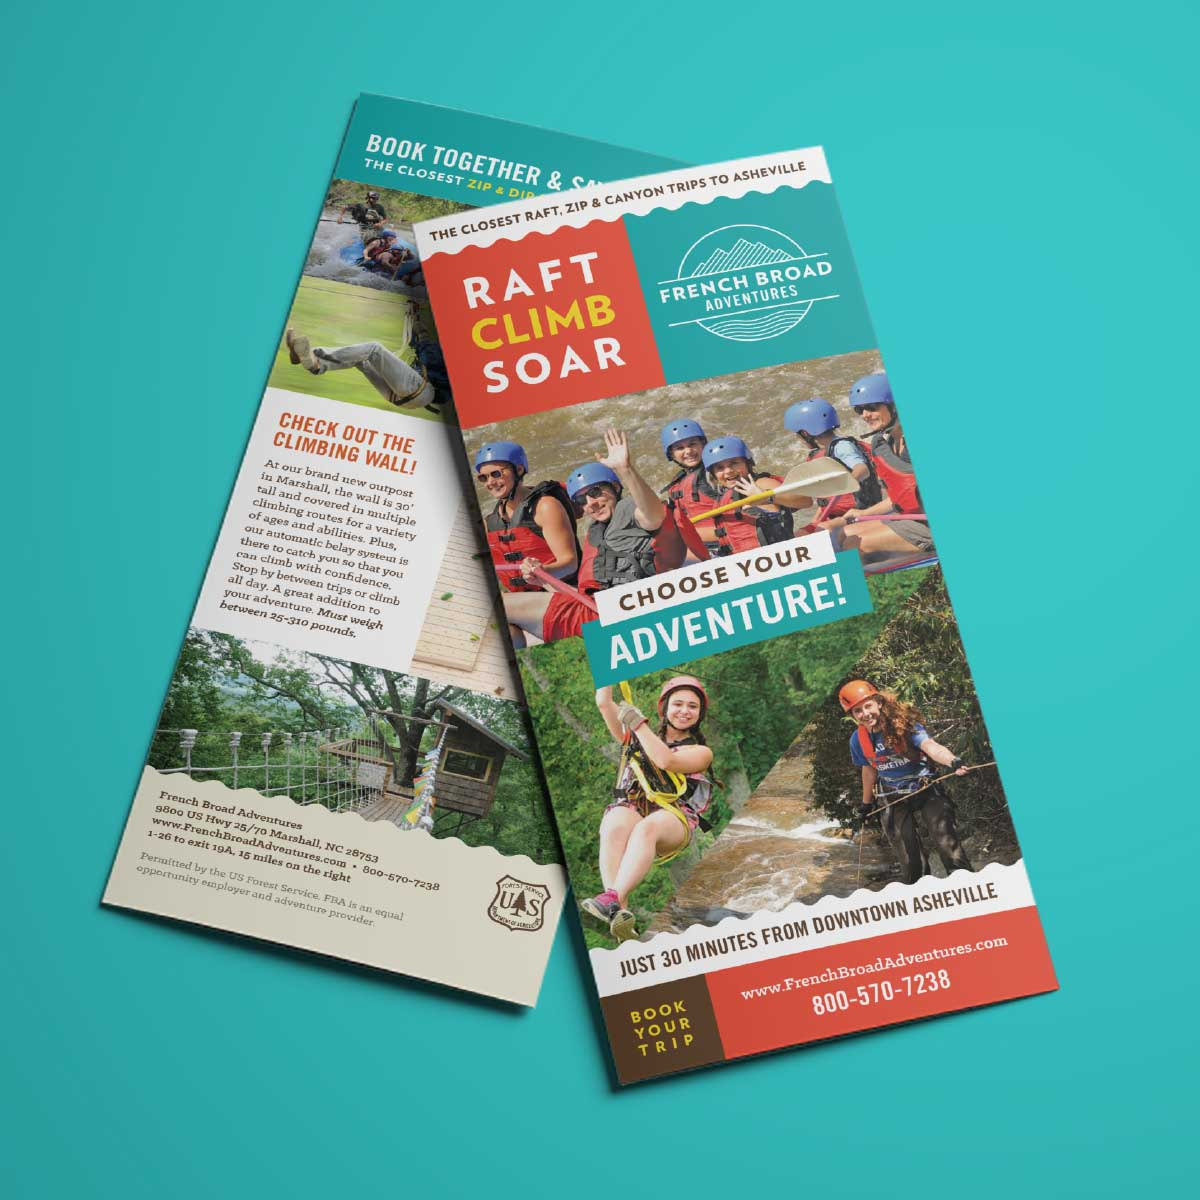 French Broad Adventures brochure outside